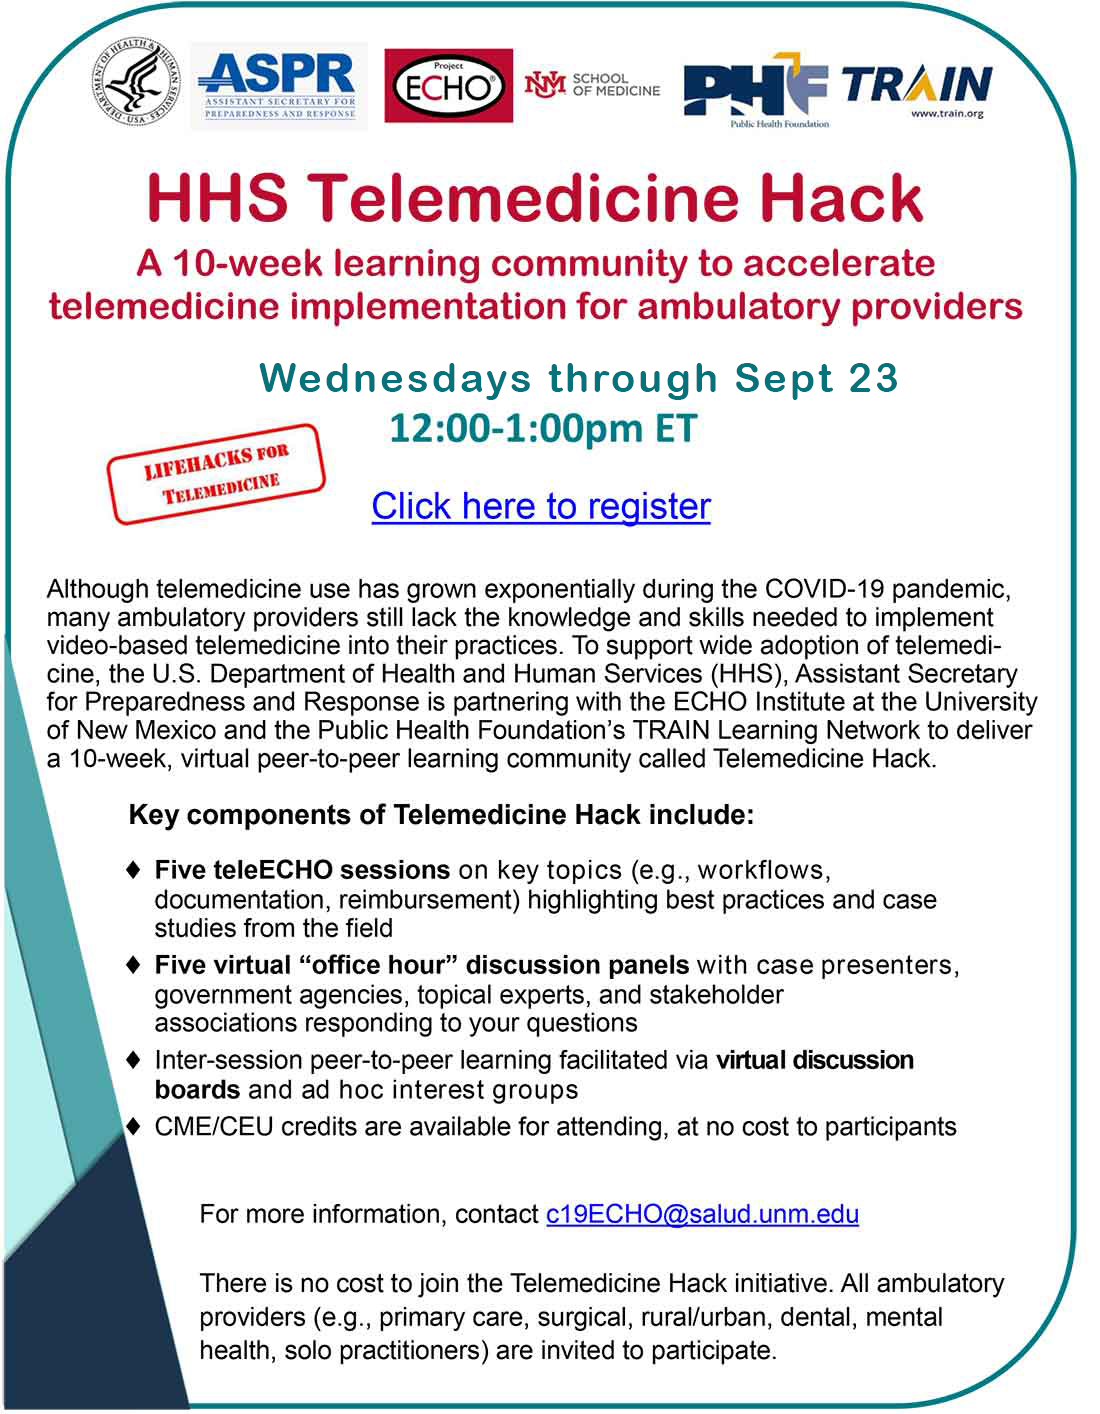 HHS-Telemedicine-Hack-Flyer.VS2